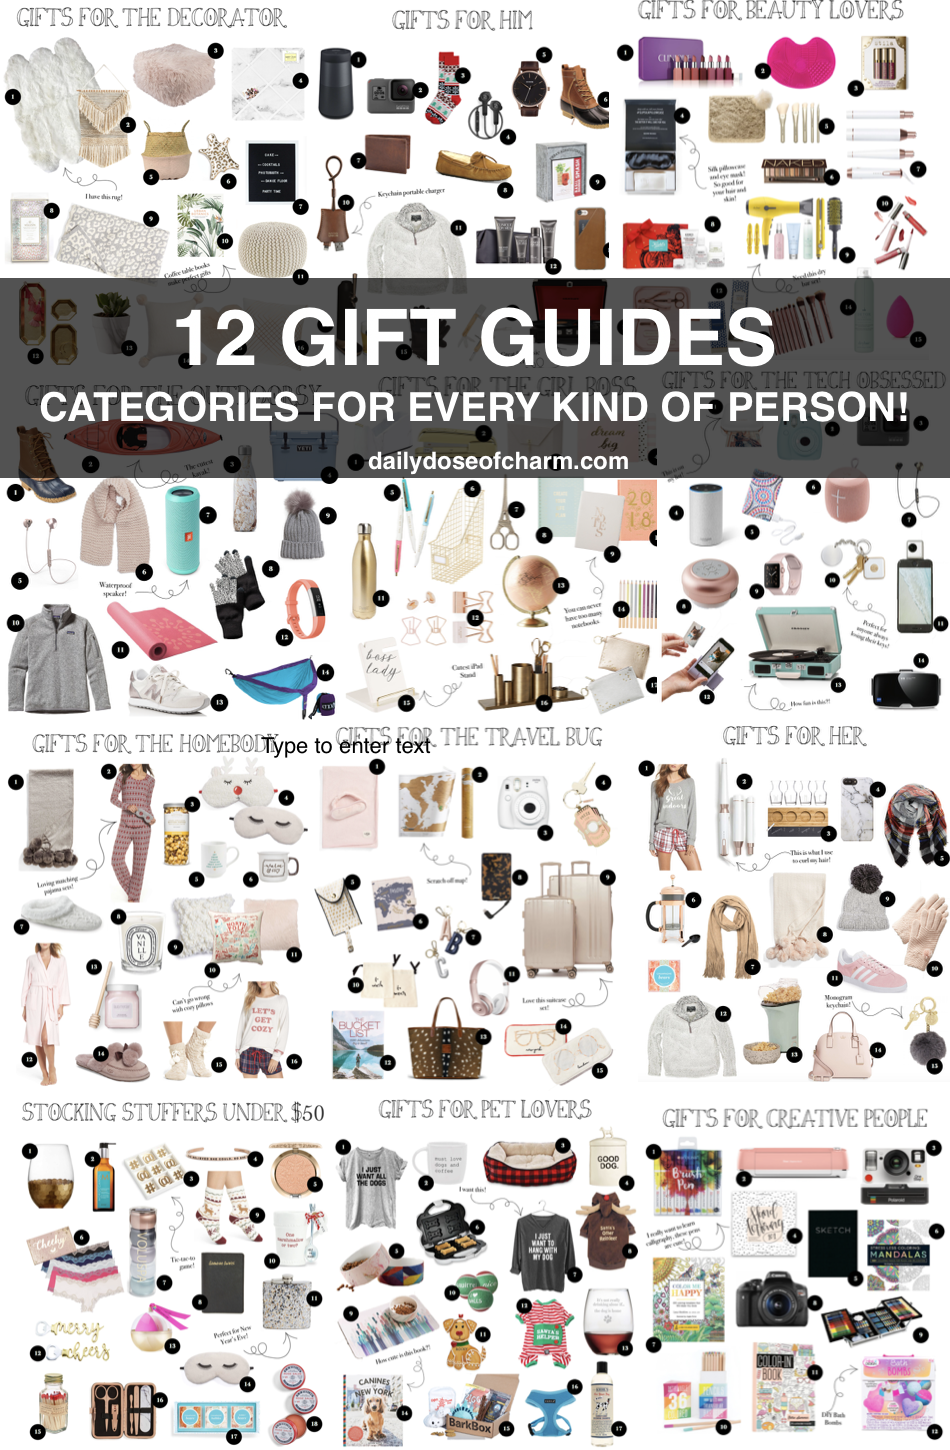 Gift guides for 2017! 12 gift guides for every kind of person, for her, him, technology lovers, beauty lovers, outdoorsy, travelers, pet lovers, girl bosses, creative people, stocking stuffers, decorator, and more!